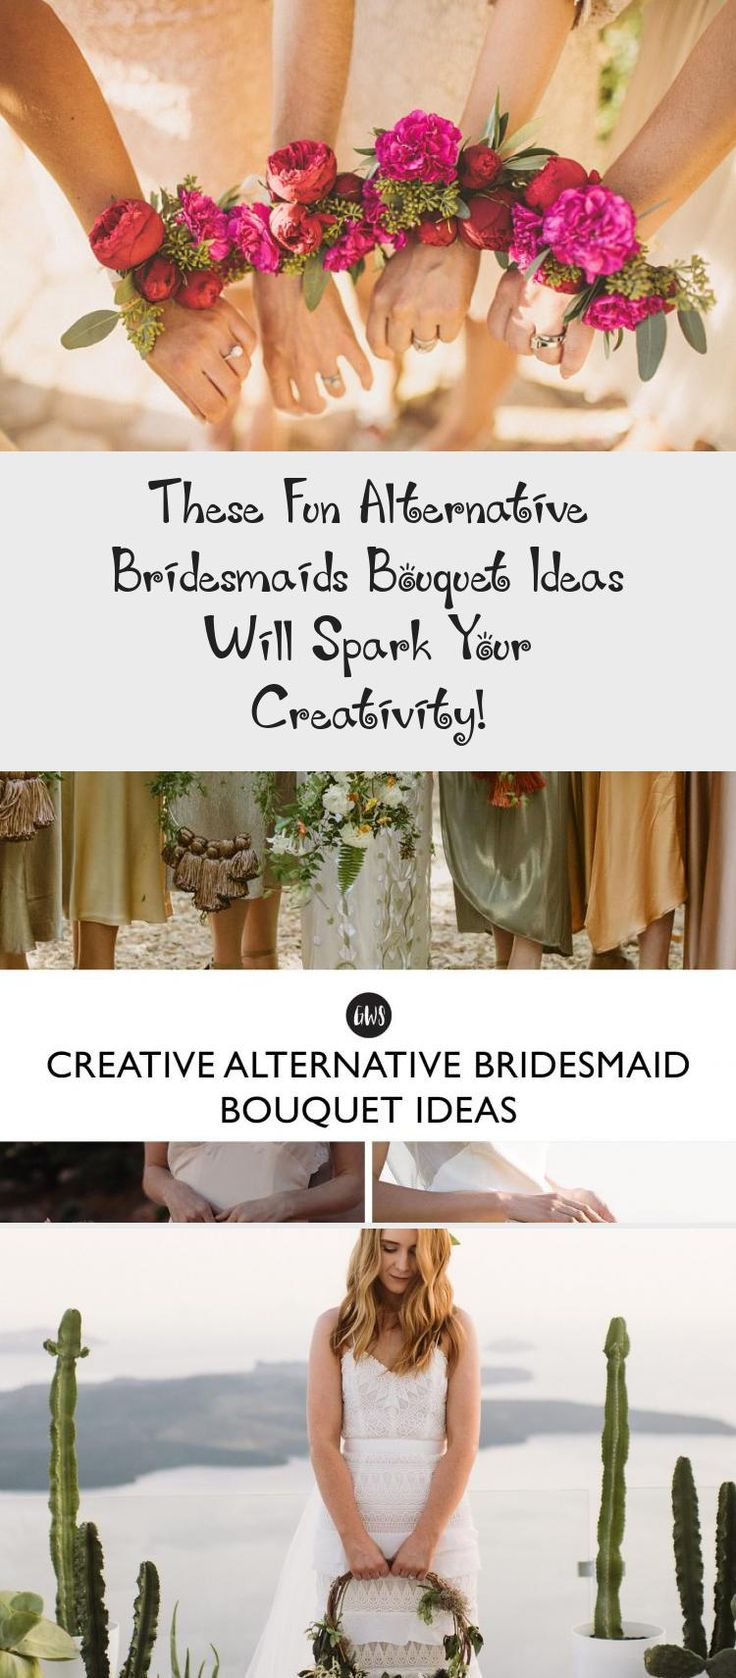 These Fun Alternative Bridesmaids Bouquet Ideas Will Spark Your Creativity! - Green Wedding Shoes #AfricanBridesmaidDresses #LilacBridesmaidDresses #BlushBridesmaidDresses #SatinBridesmaidDresses #BridesmaidDressesPastel